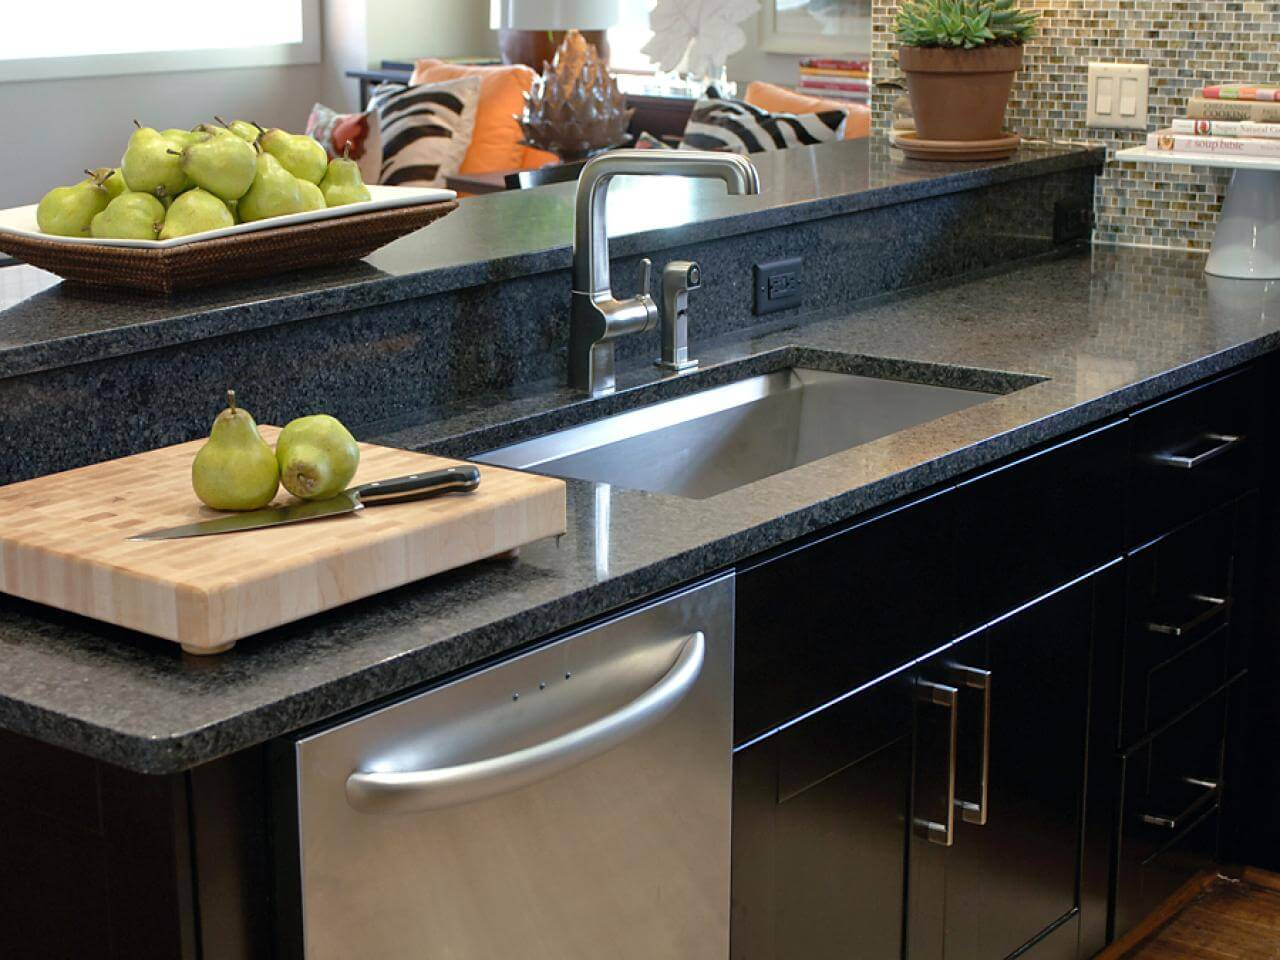 The stainless steel sink is always a solid addition